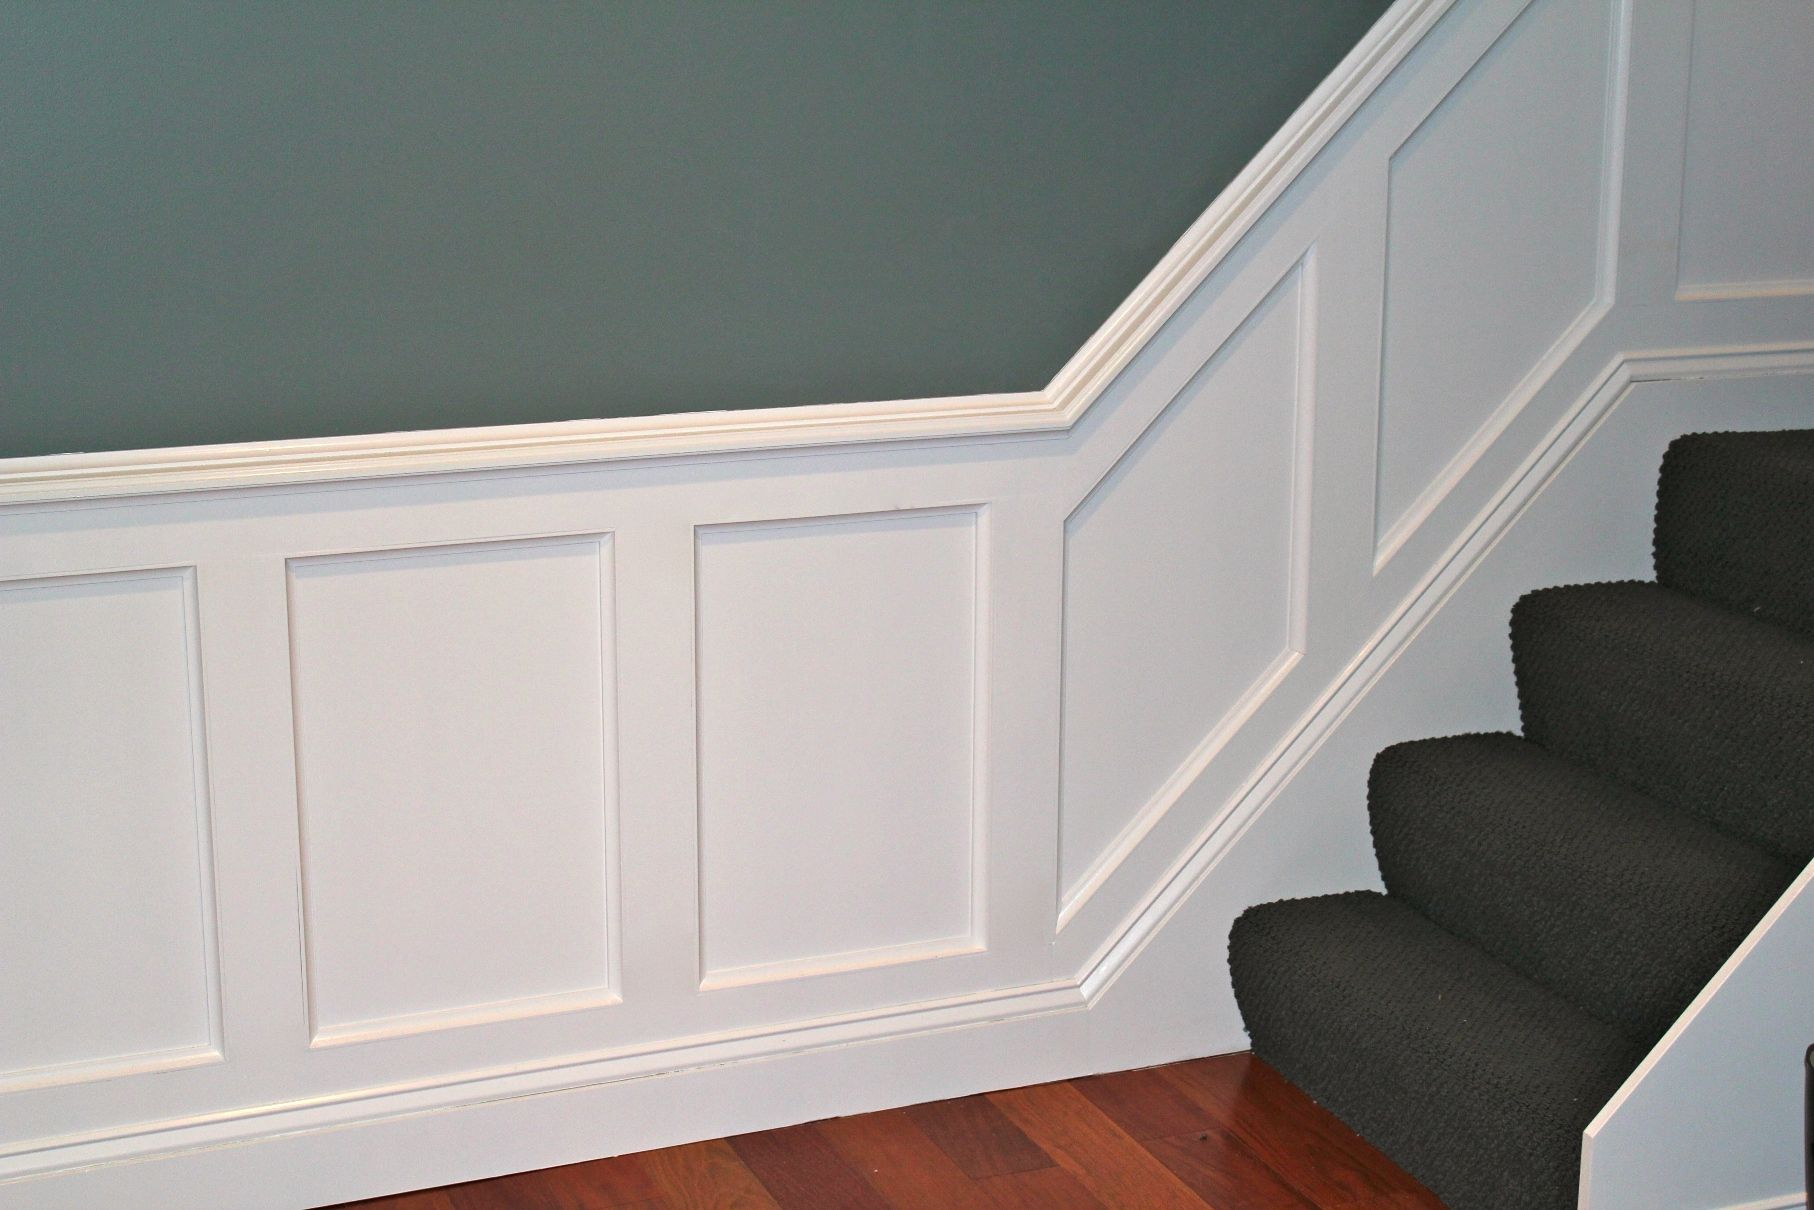 Wanscotting Molding Images Design Guide Planning A Wainscoting Installation Constru Guia Al Wainscoting Panels Wainscoting Styles Installing Wainscoting